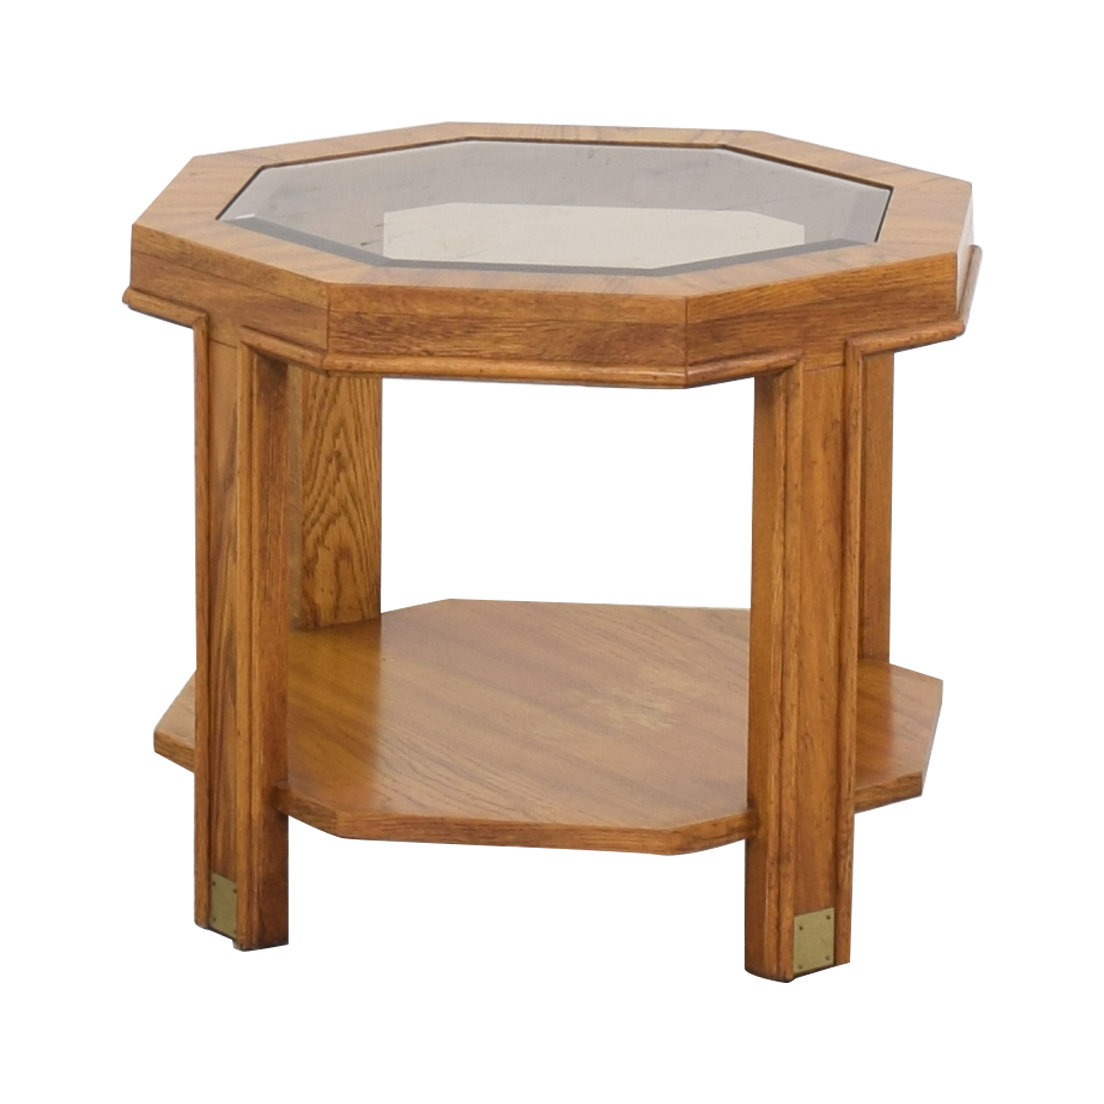 Drexel Heritage Drexel Heritage Hexagon Side Table End Tables